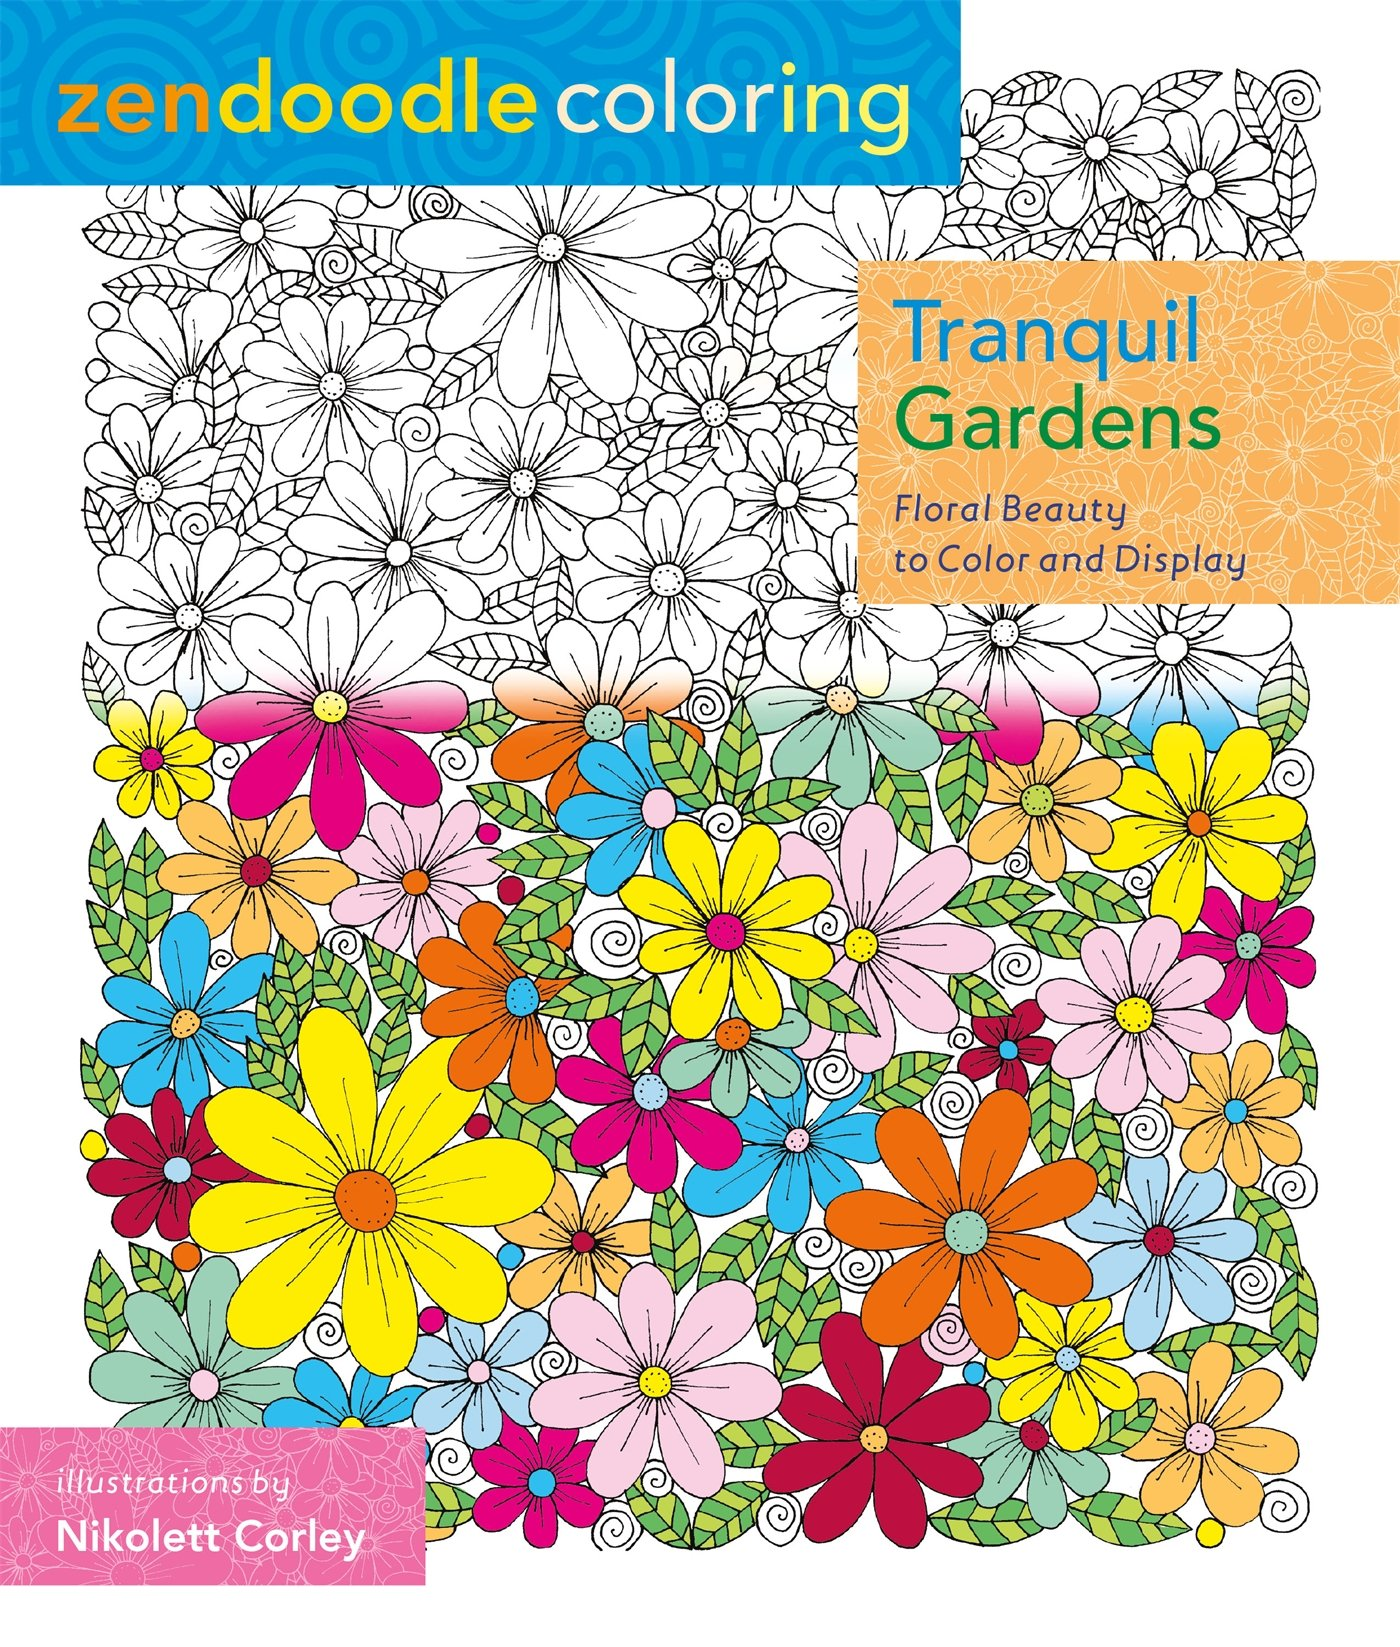 Zendoodle coloring enchanting gardens - Amazon Com Zendoodle Coloring Tranquil Gardens Floral Beauty To Color And Display 9781250109514 Nikolett Corley Books